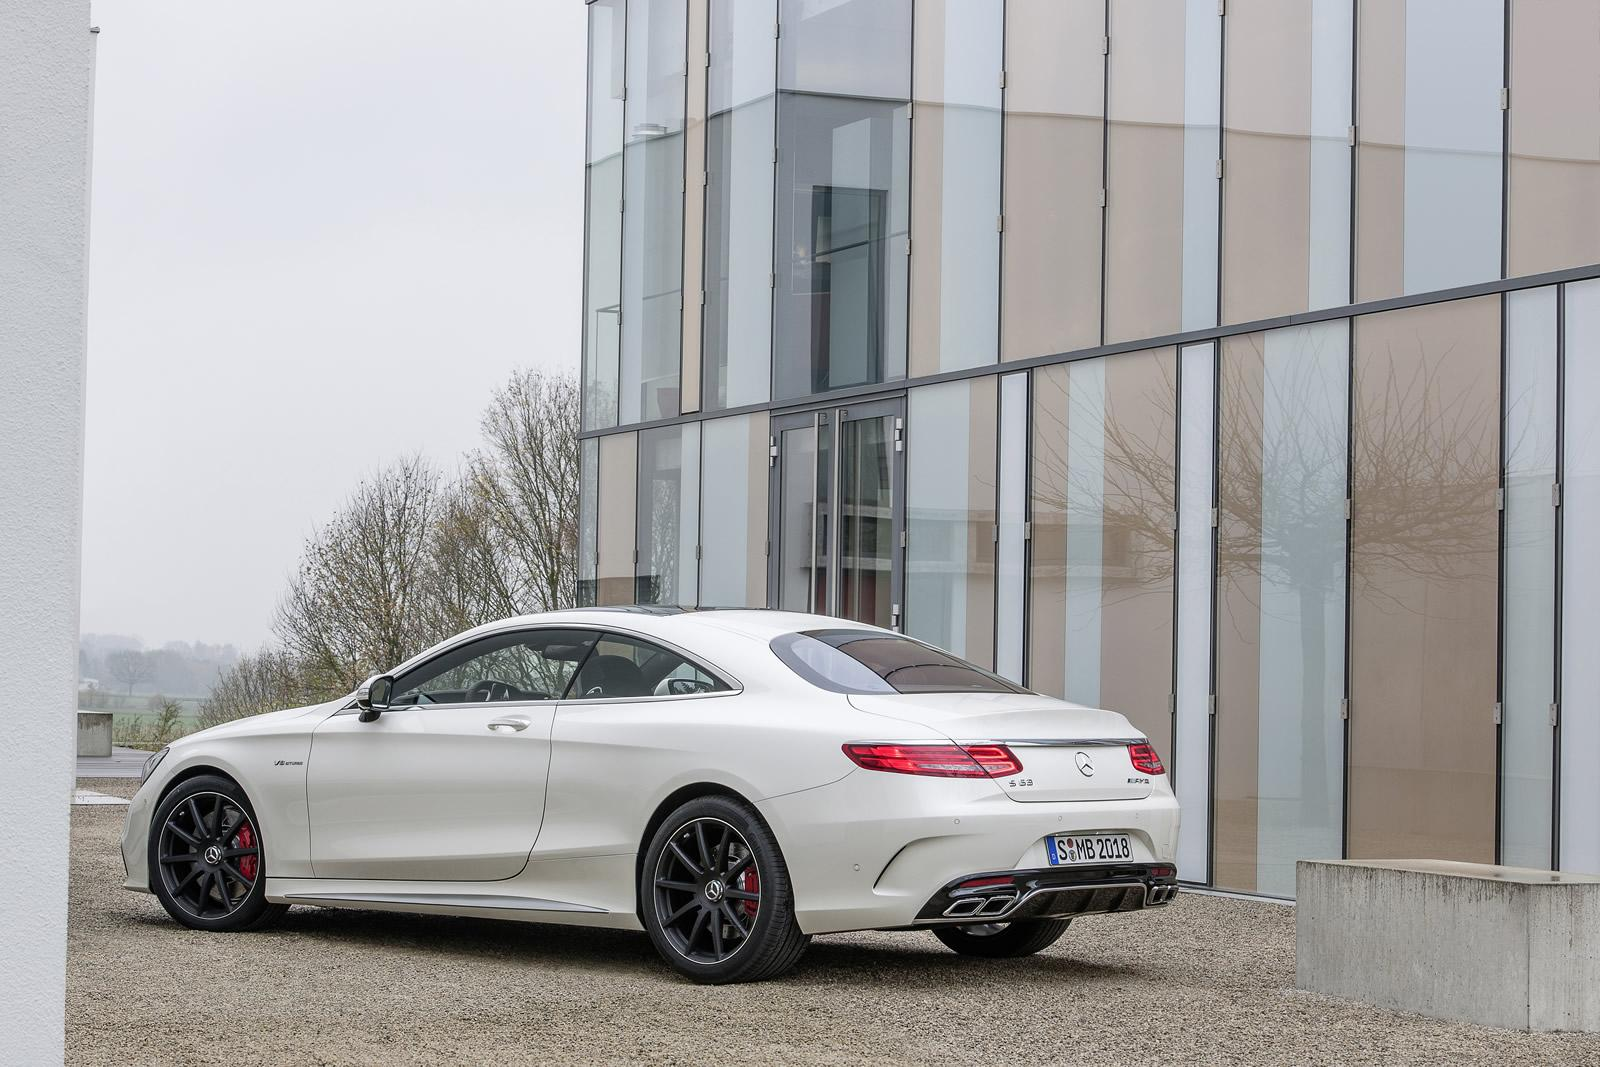 Mercedes cars news s 63 amg coupe officially unveiled for Mercedes benz s63 amg coupe